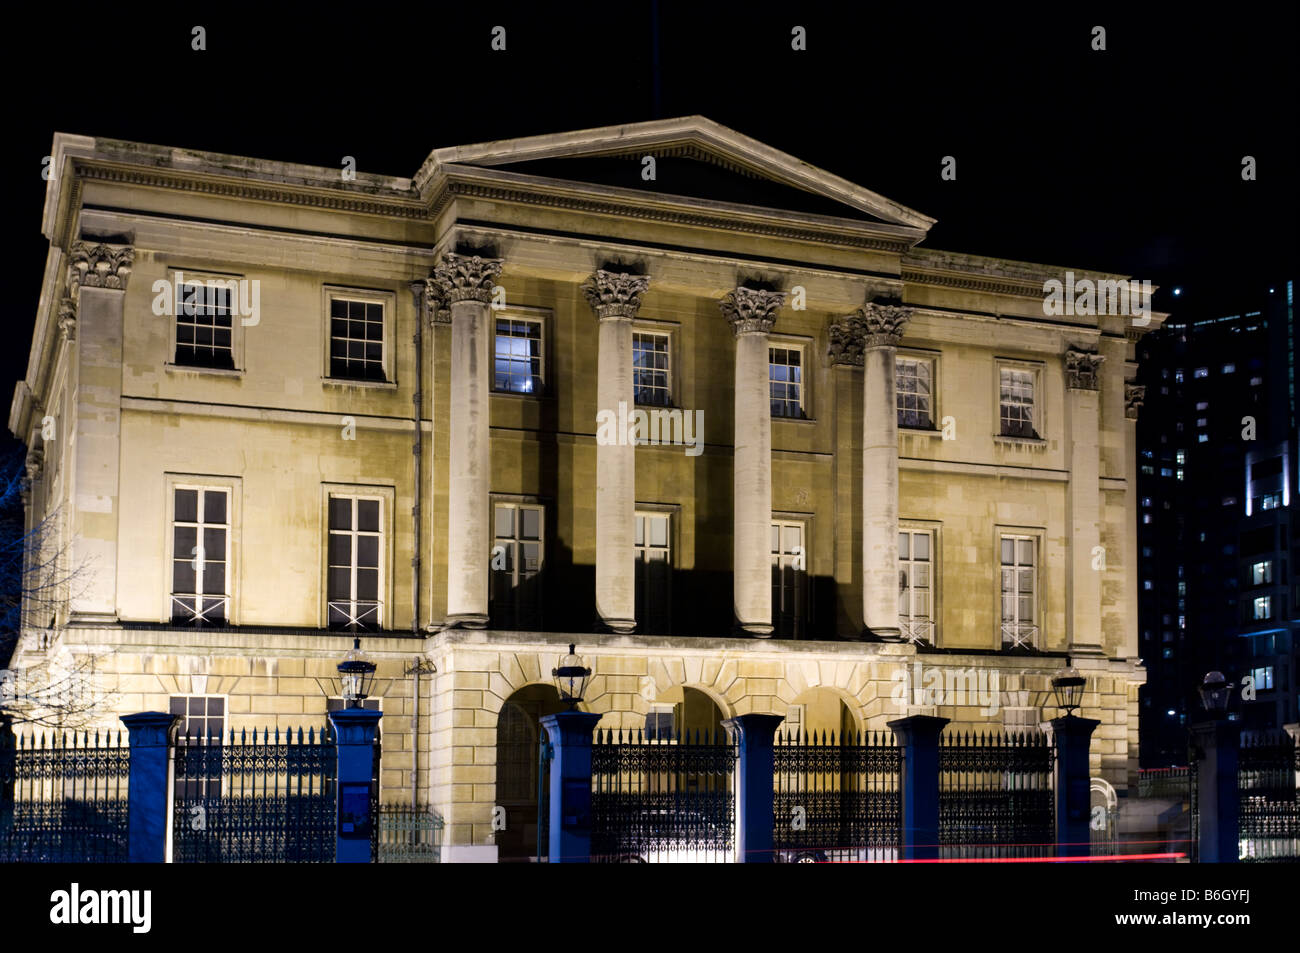 Apsley house Number 1 London - Westminster - Stock Image